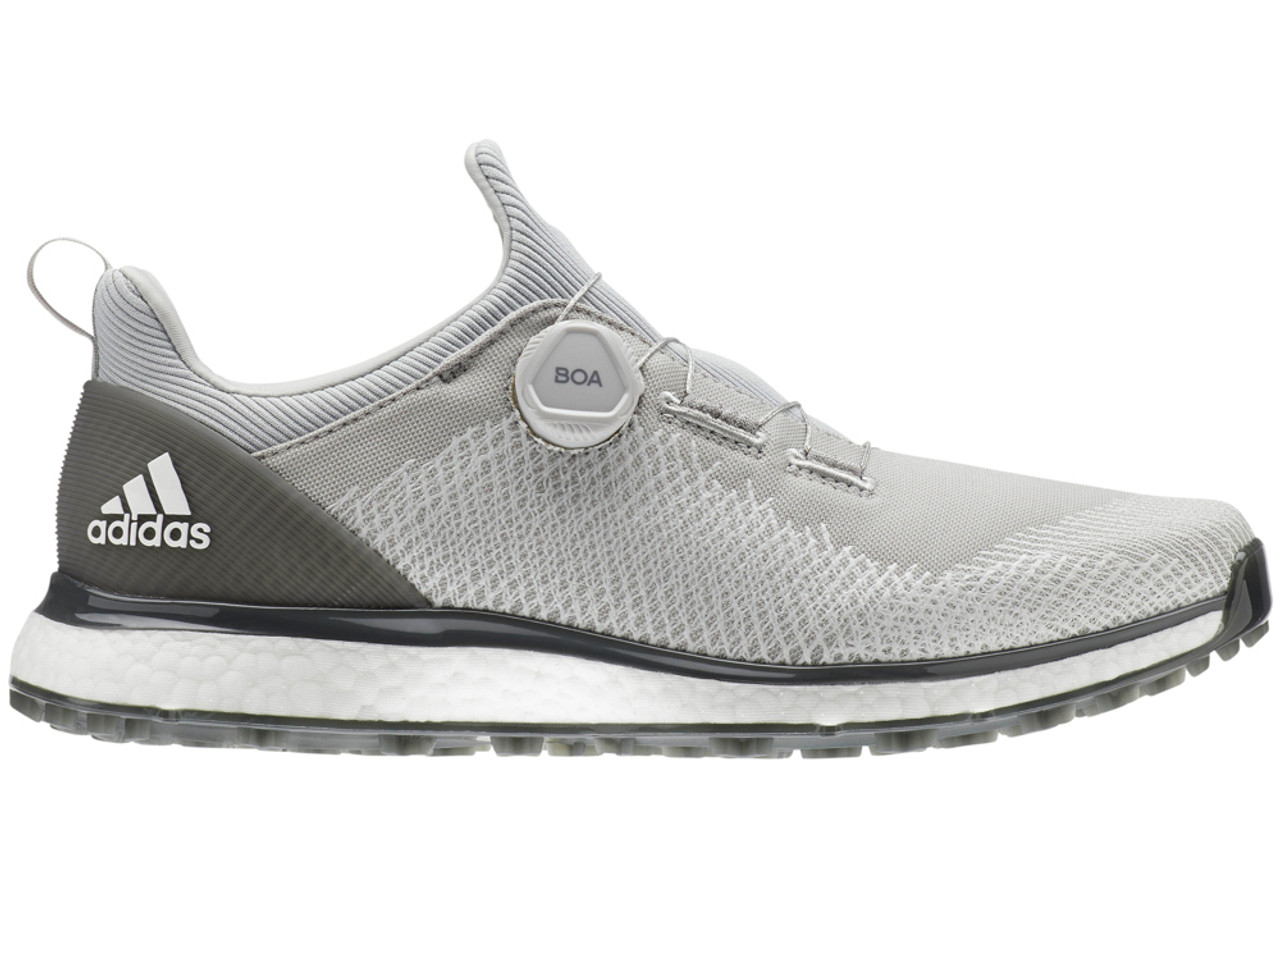 775d5052ff52 Adidas Forgefiber BOA Golf Shoes - Grey Two FTWR White - Mens For ...